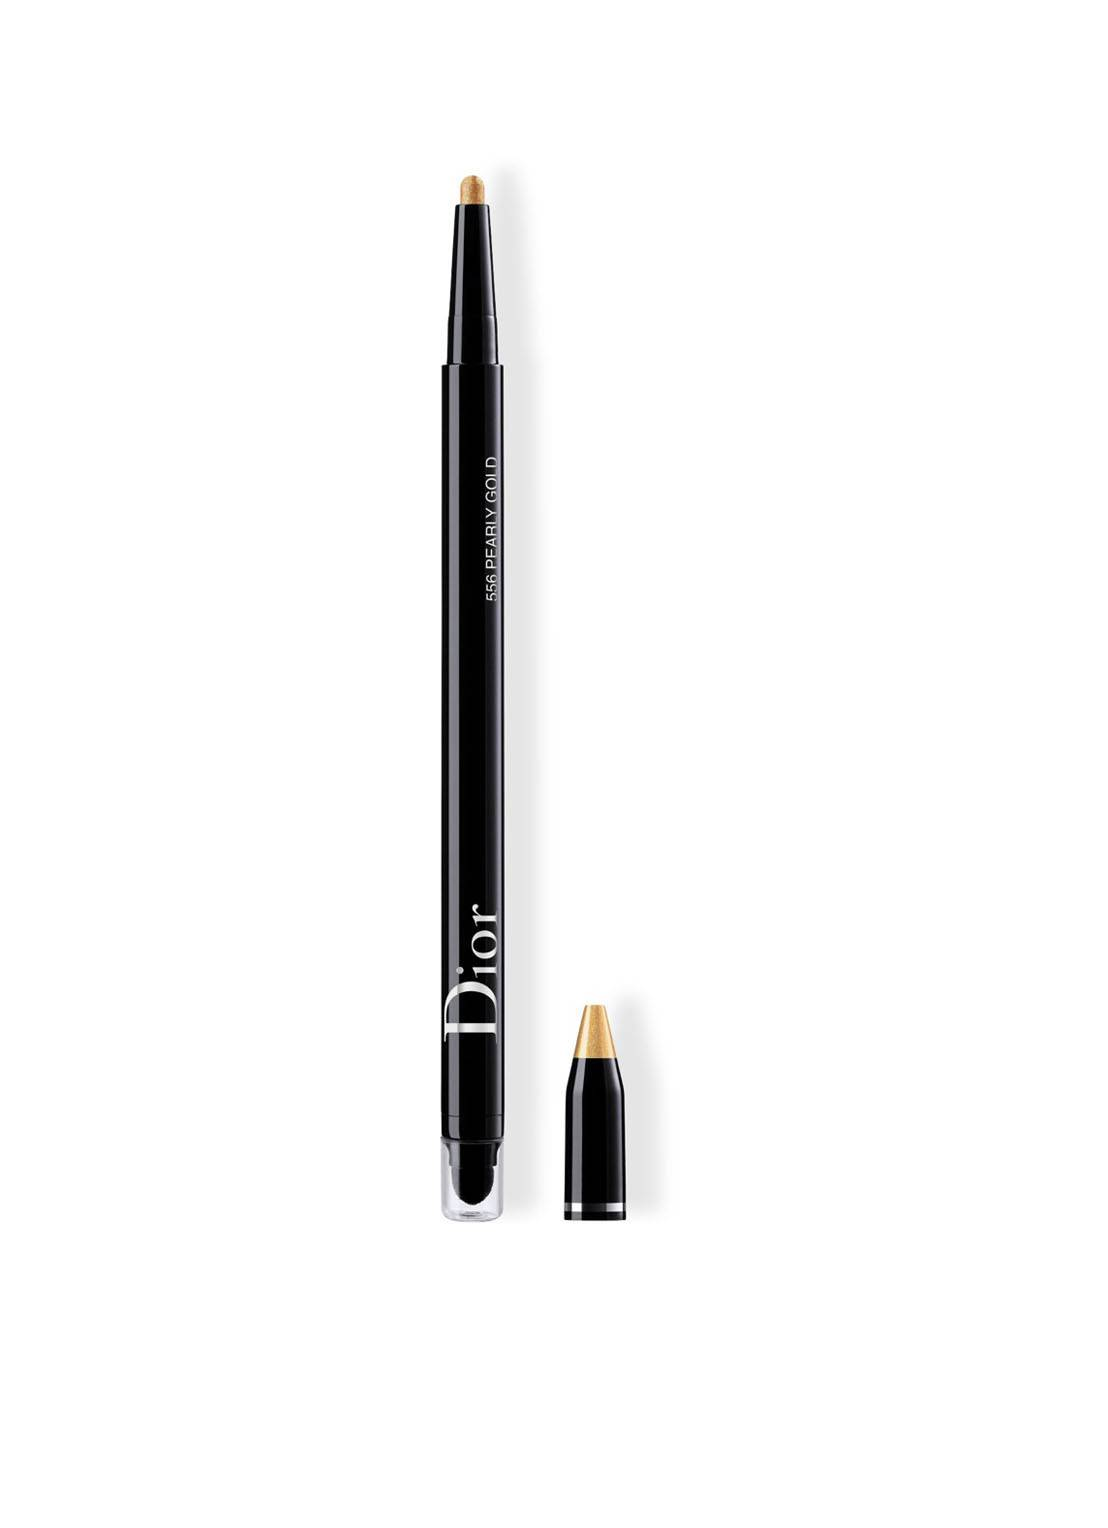 DIOR Diorshow 24H Stylo - eye-liner imperméable - 556 Pearly Gold